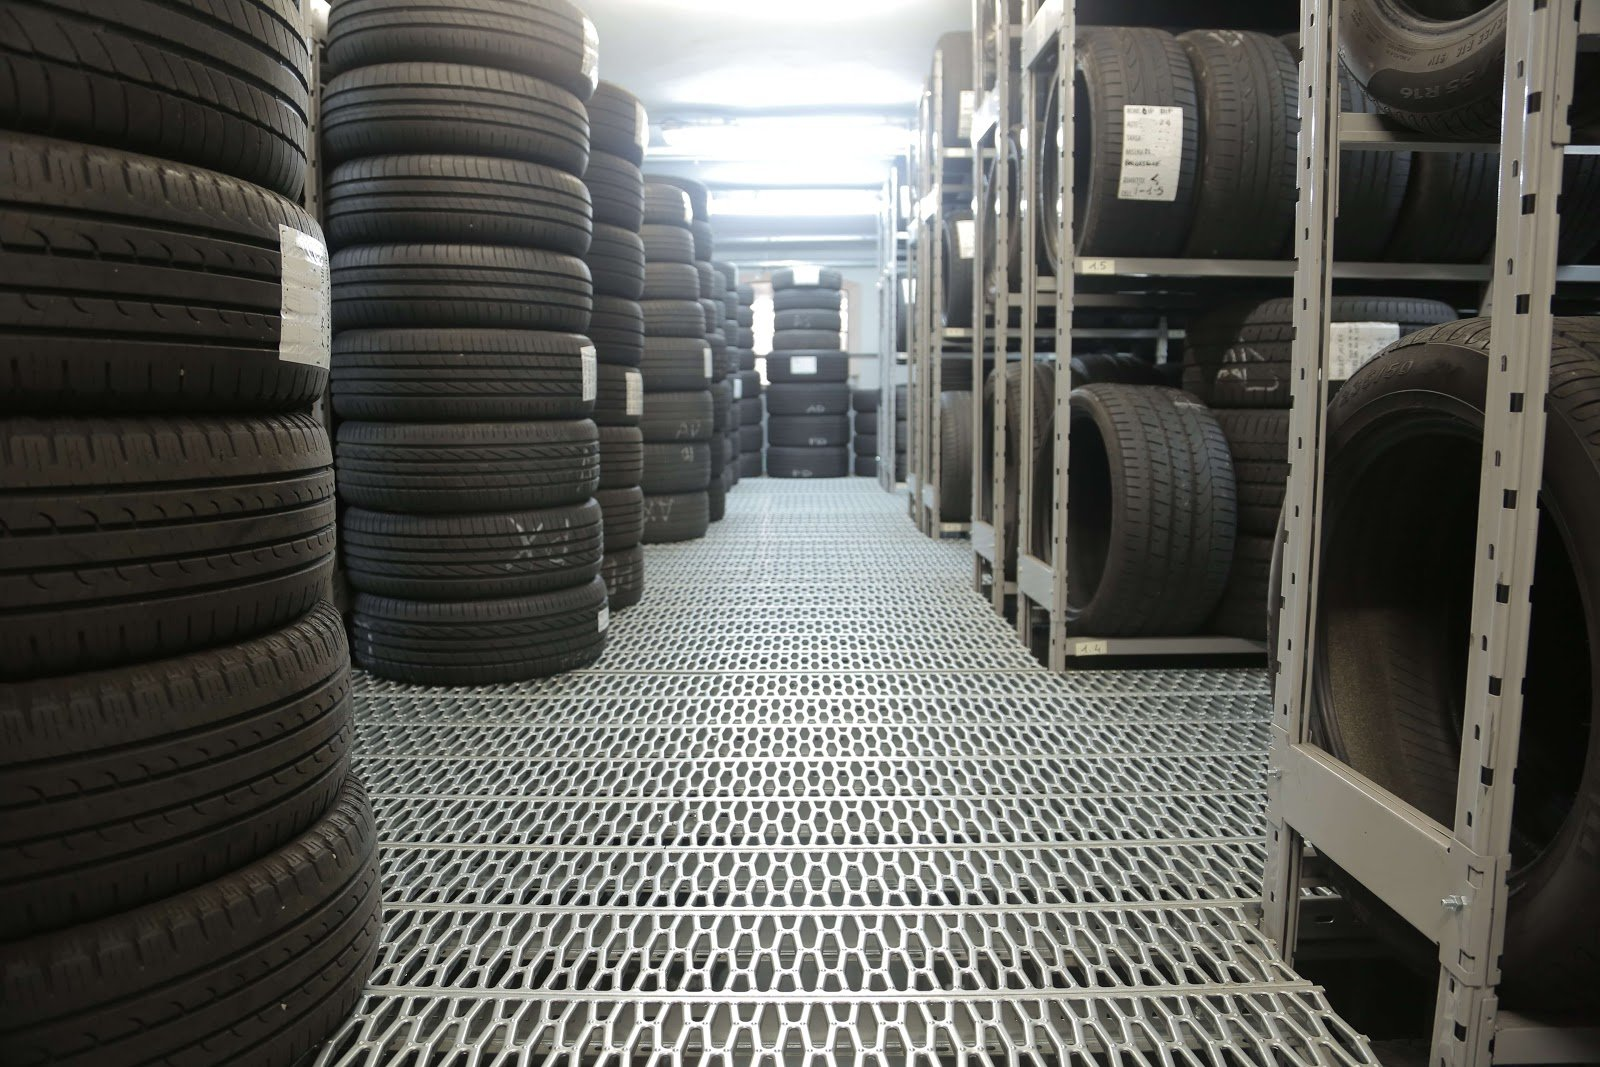 How Long Does a Tire Rotation Take?